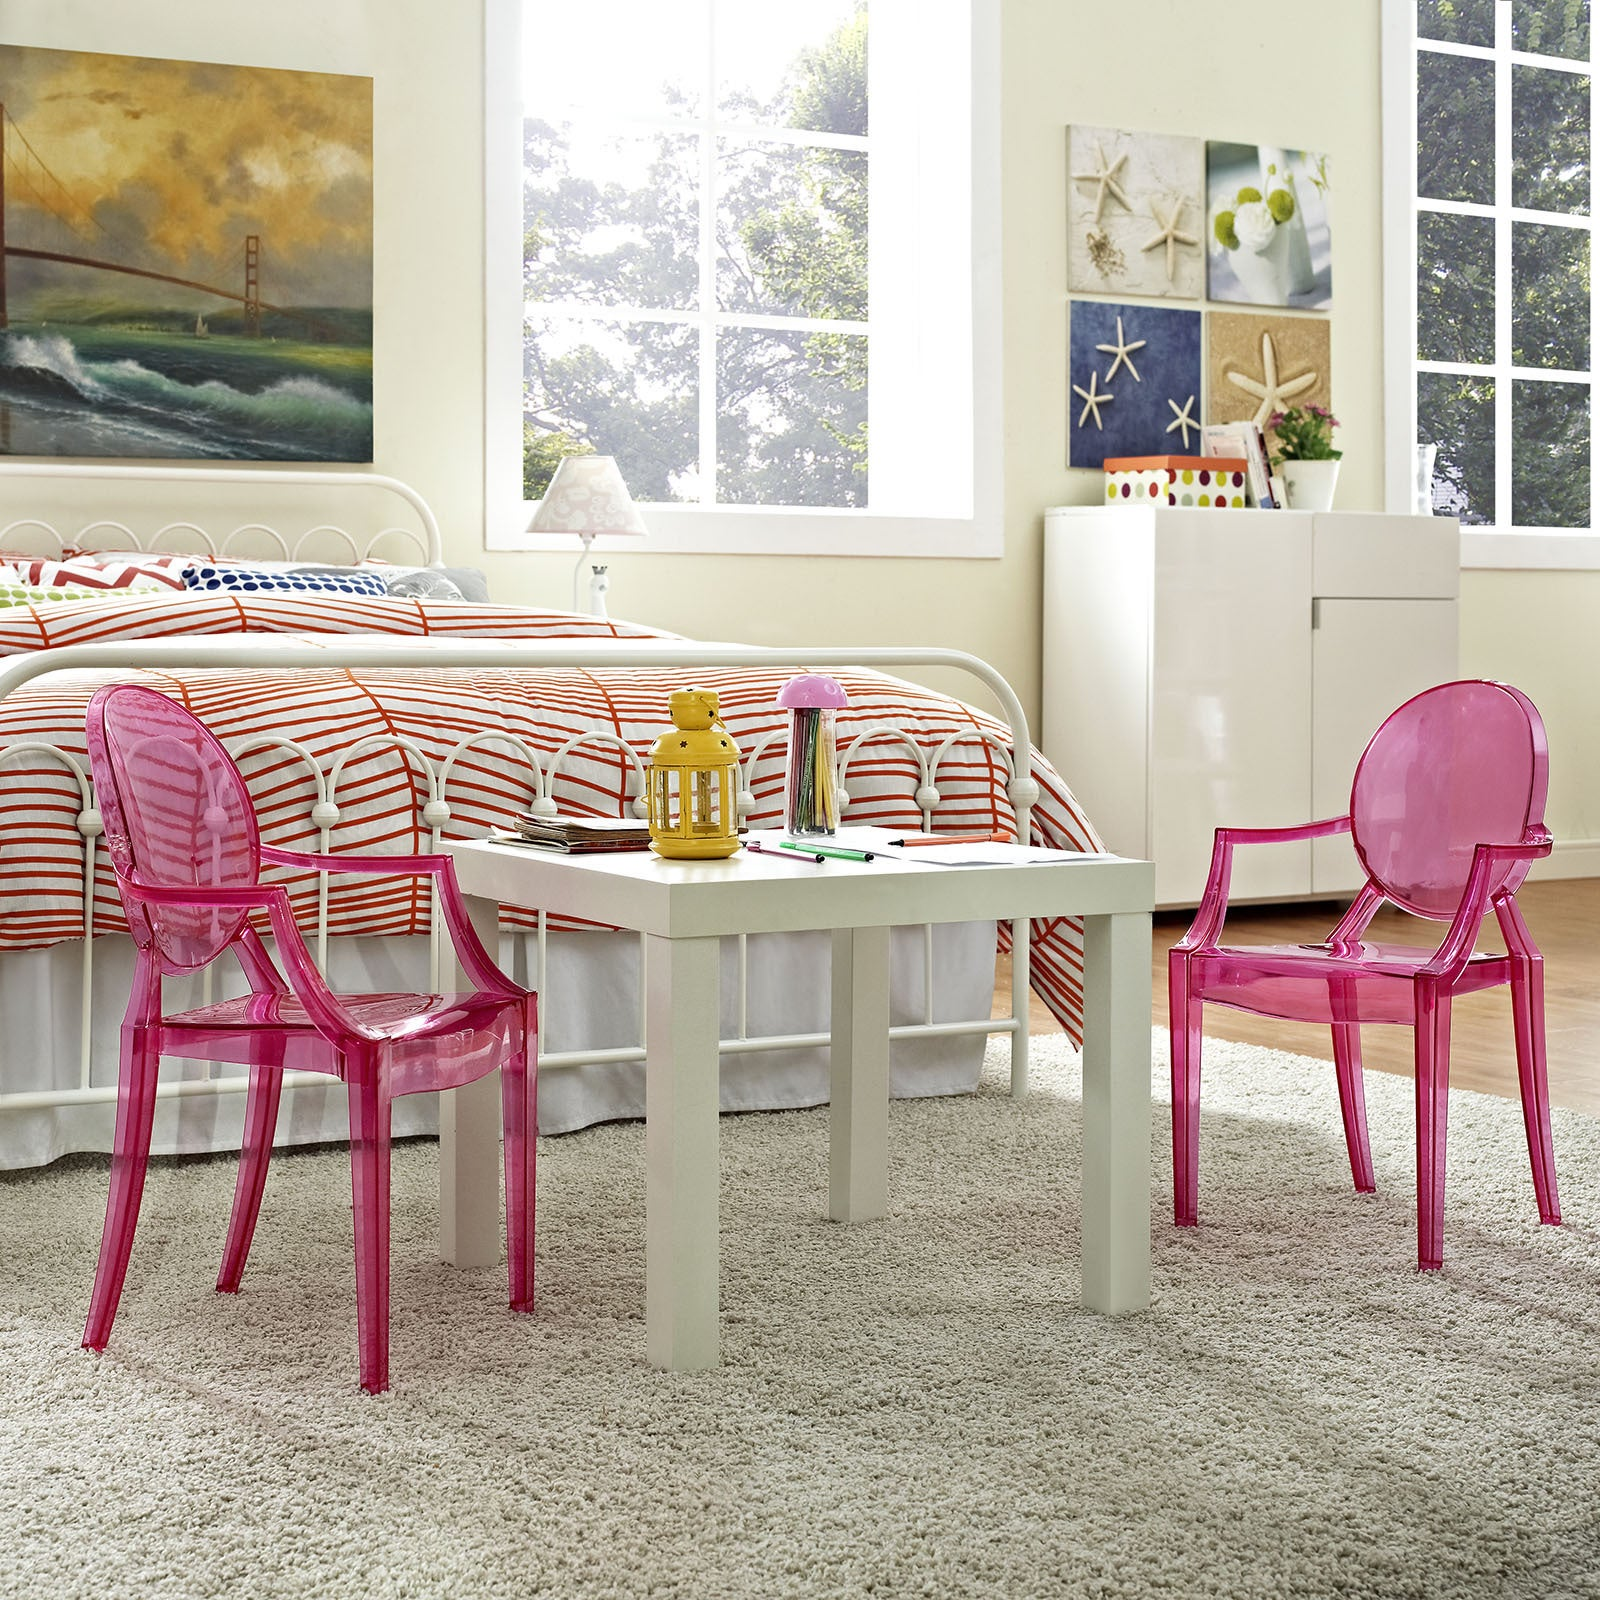 Shop Casper Pink Polycarbonate Kidsu0027 Chair   Free Shipping Today    Overstock.com   11914695